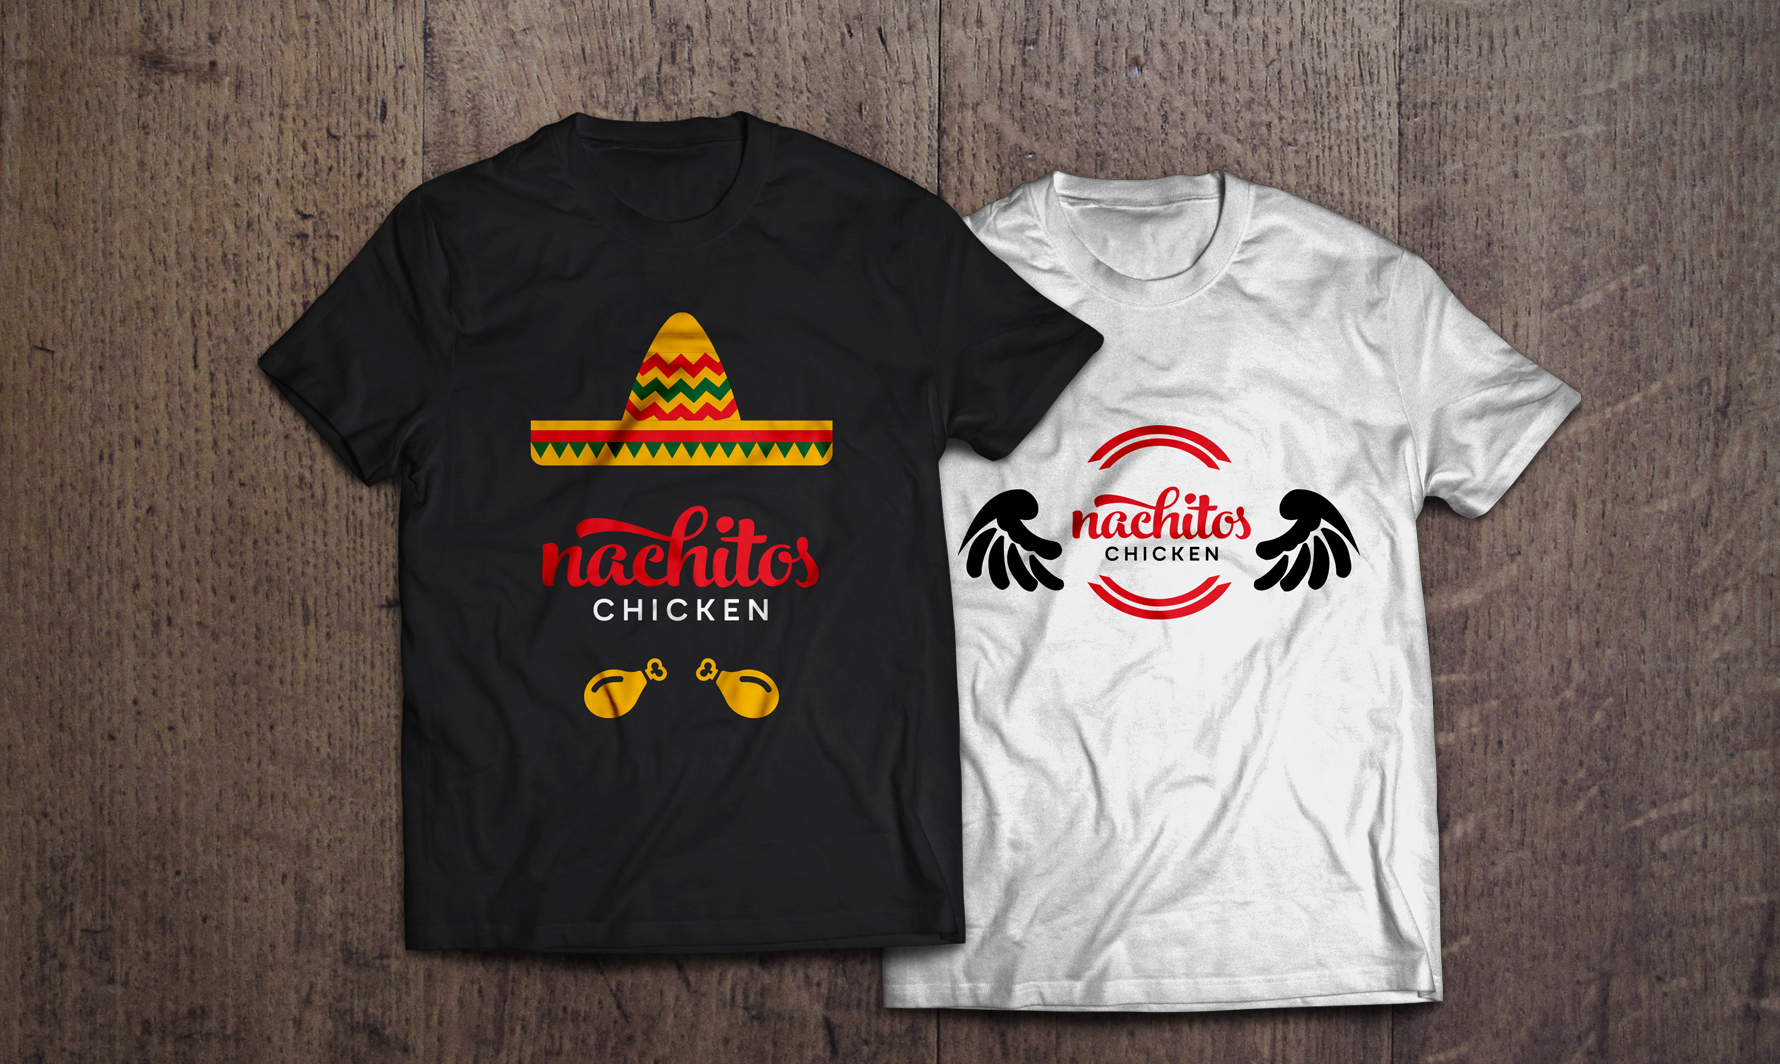 salamo design t-shirt nachitos chicken